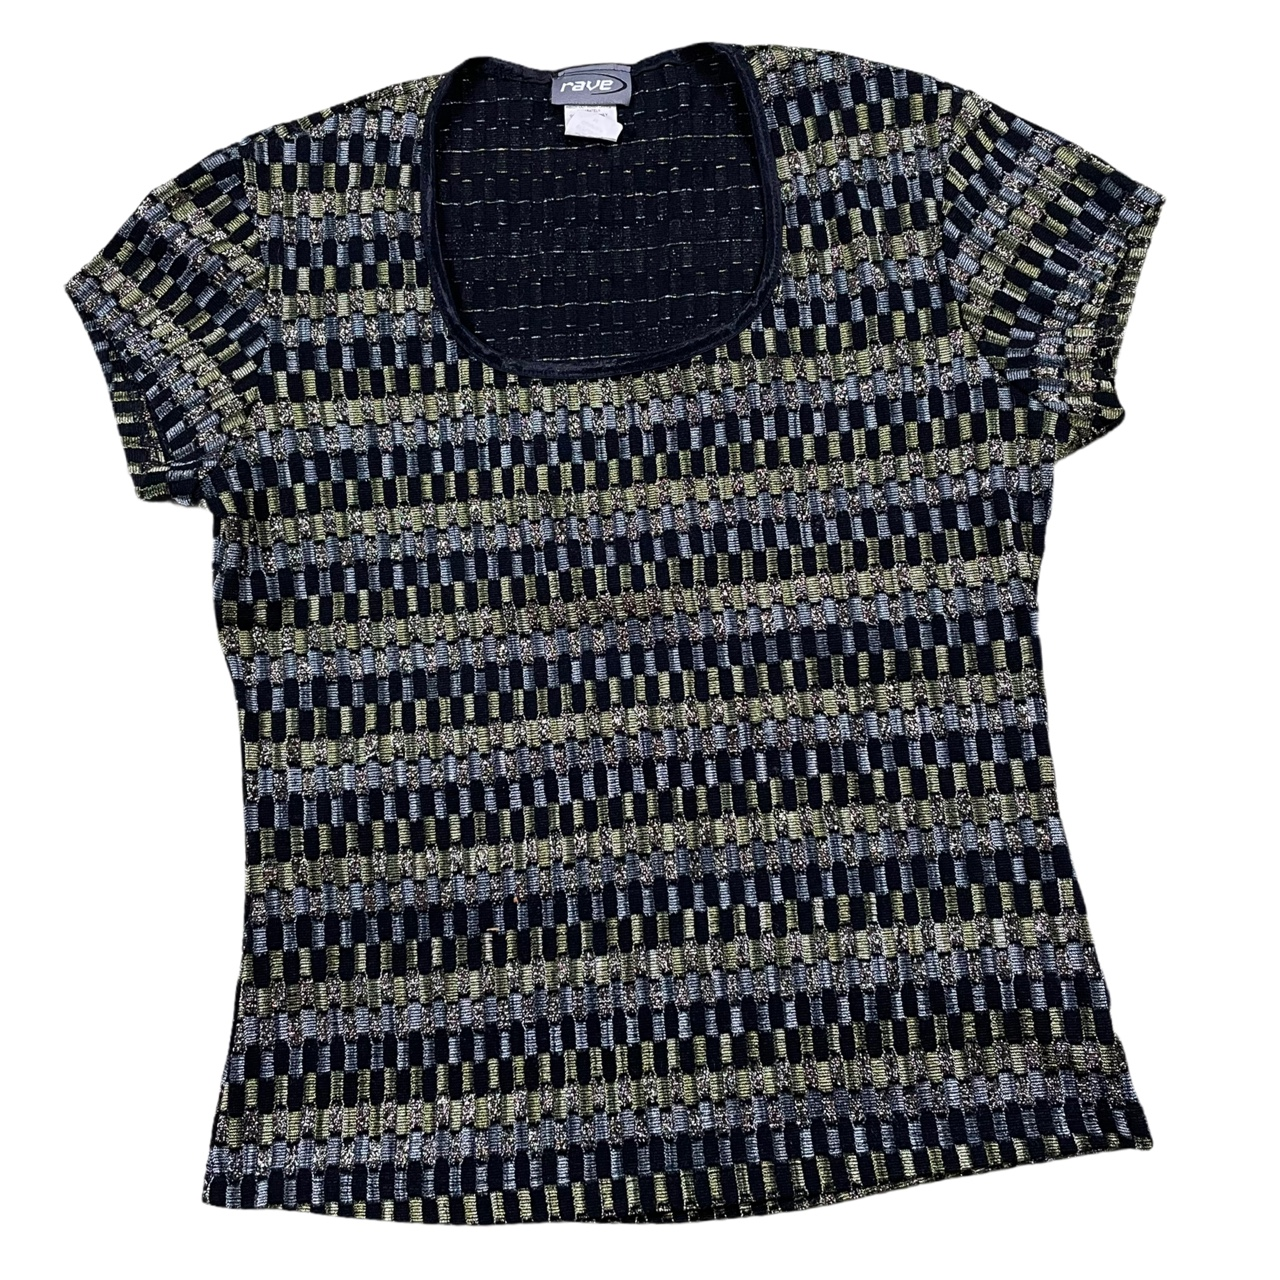 Product Image 1 - 90s Glitter Top - knit